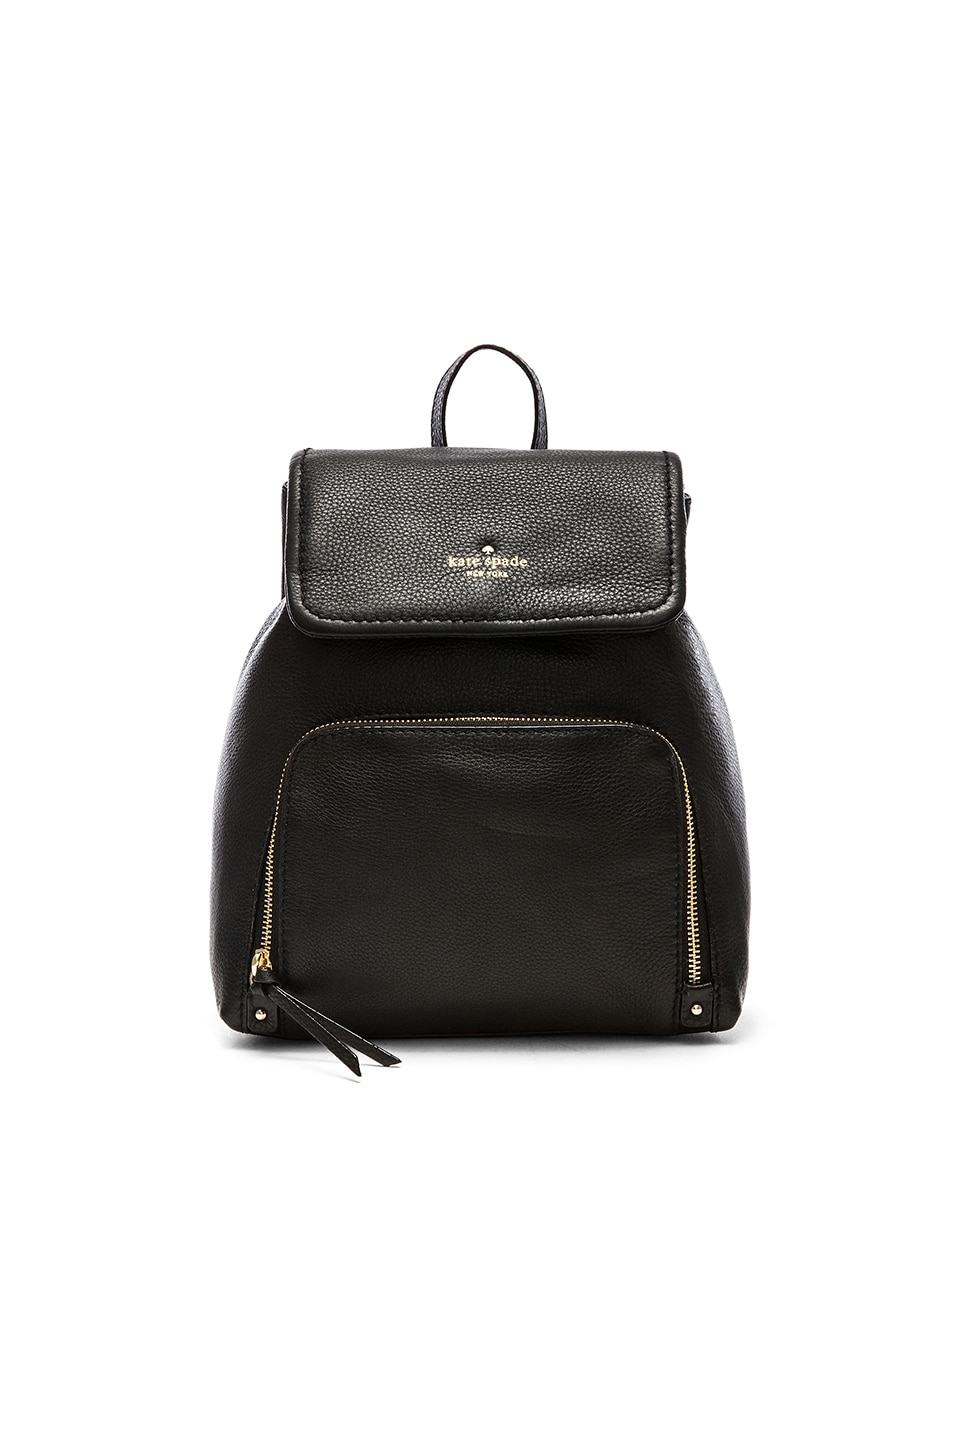 kate spade new york Charley Backpack in Black